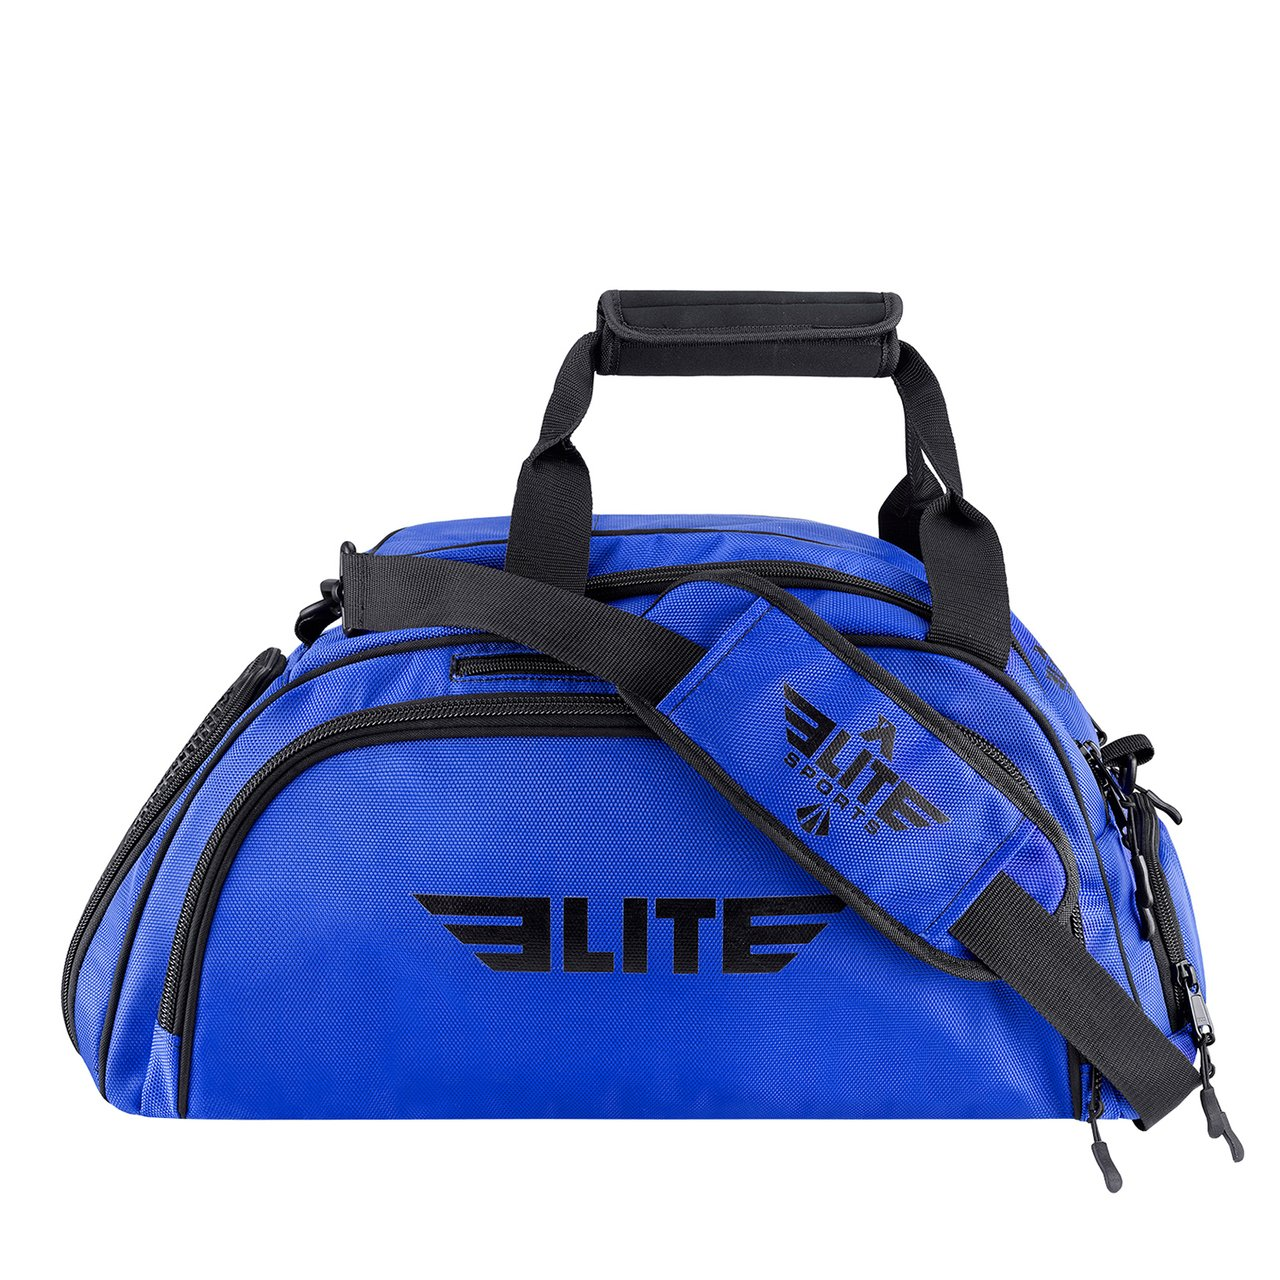 Load image into Gallery viewer, Elite Sports Warrior Series Blue Medium Duffel Boxing Gear Gym Bag & Backpack